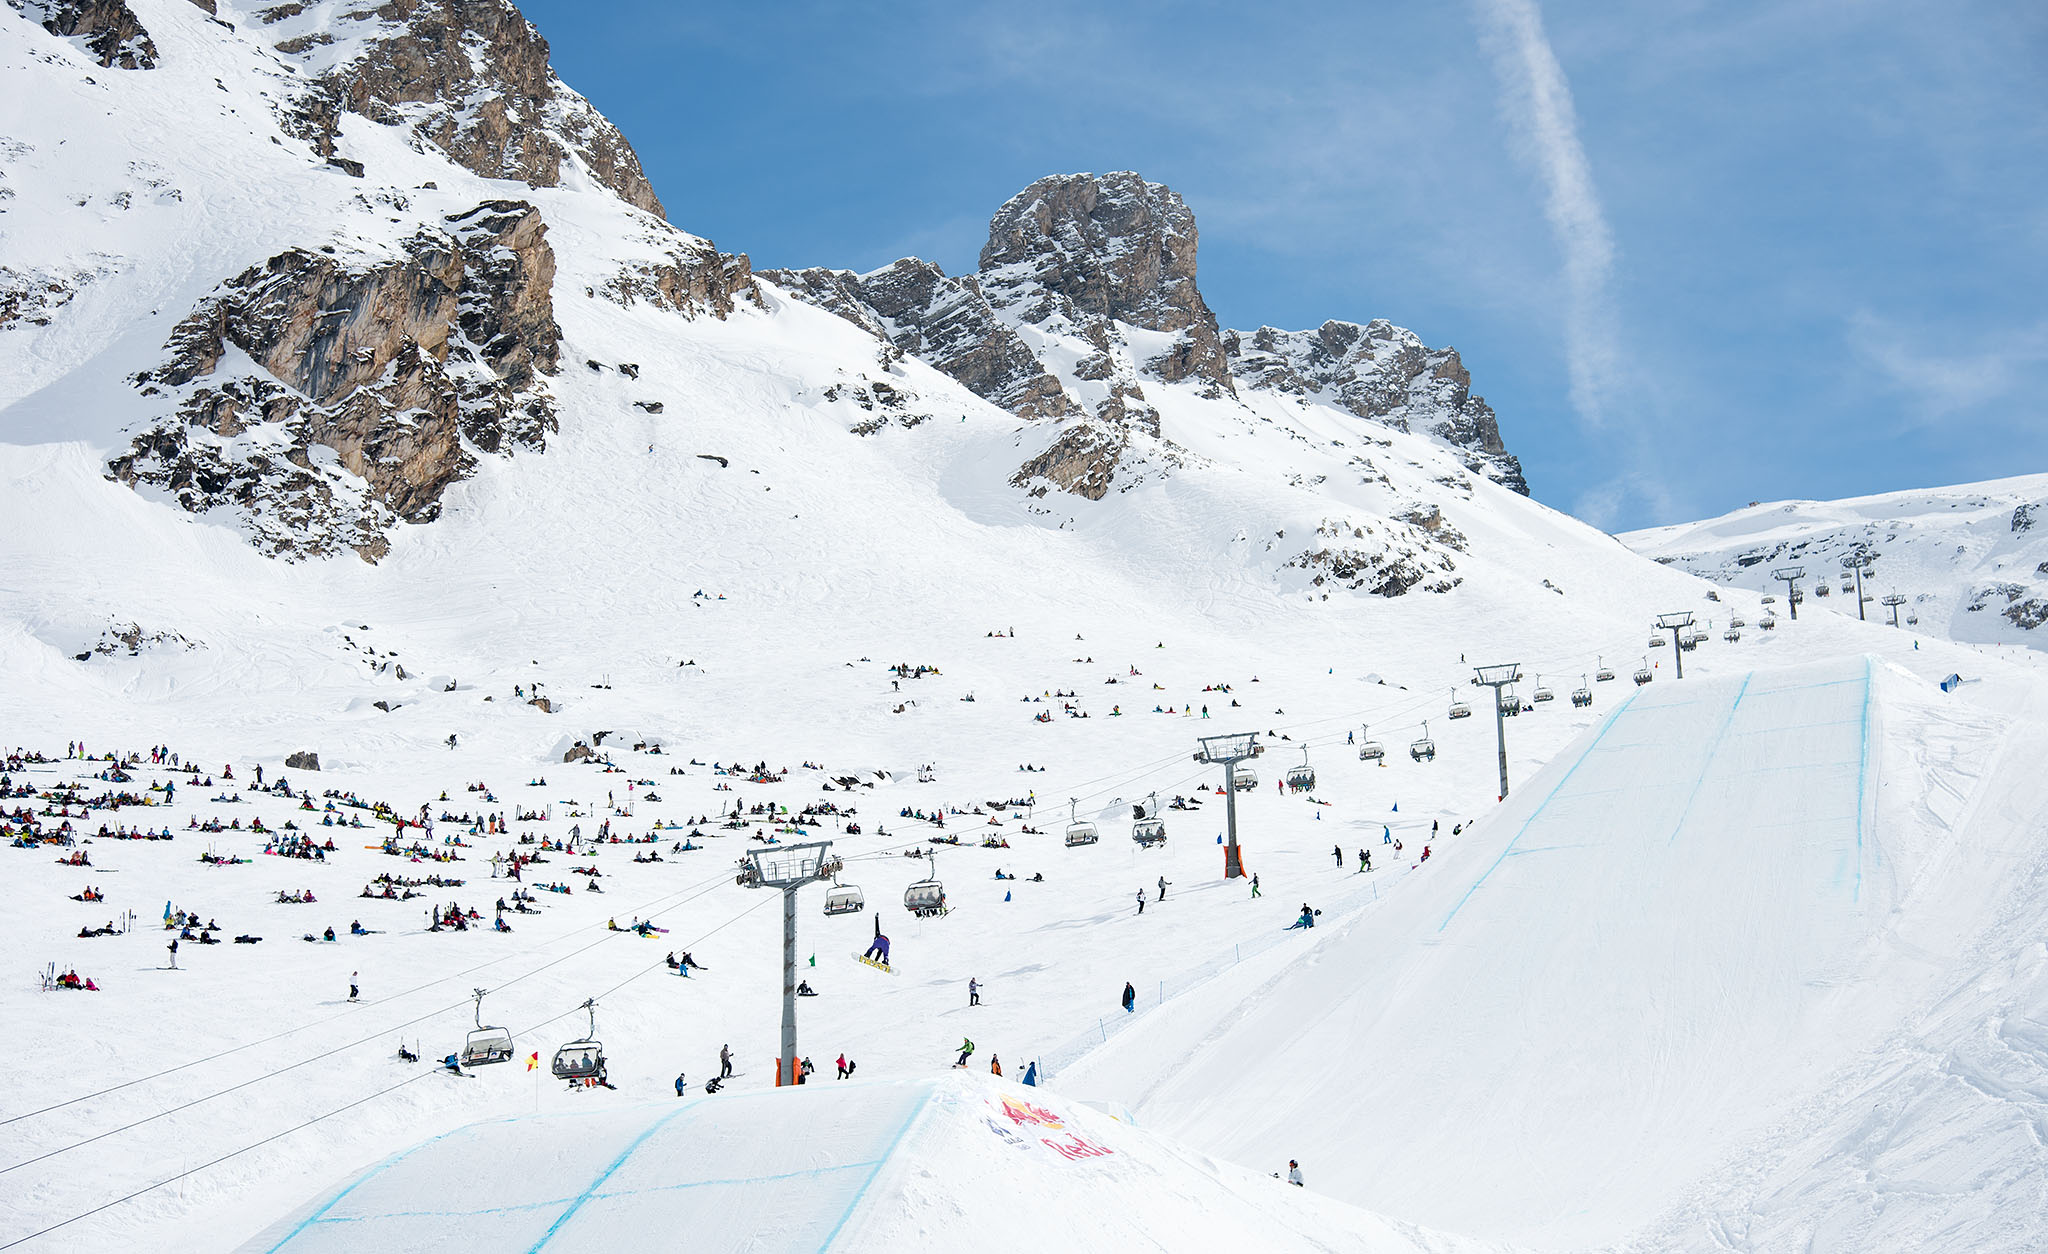 X Games Tignes 2013